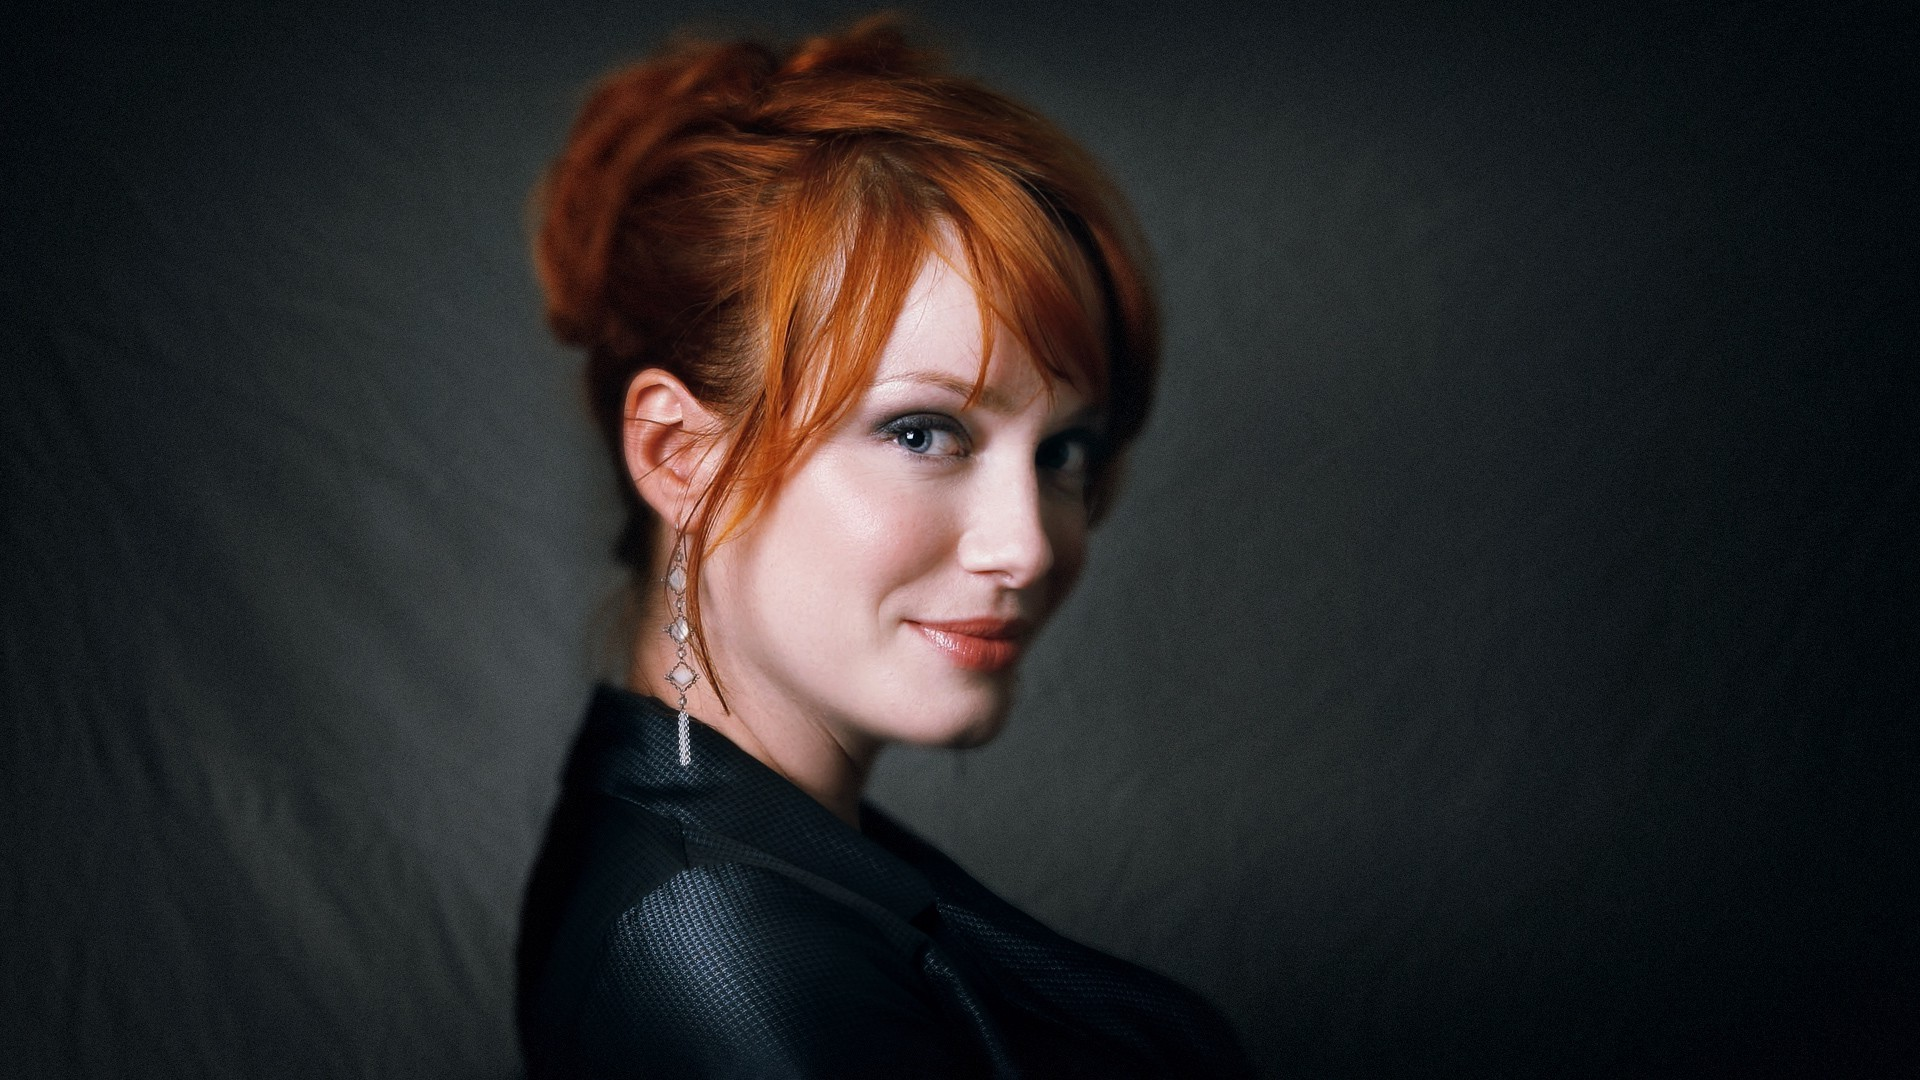 Christina Hendricks Wallpapers the best 75 images in 2018 1920x1080